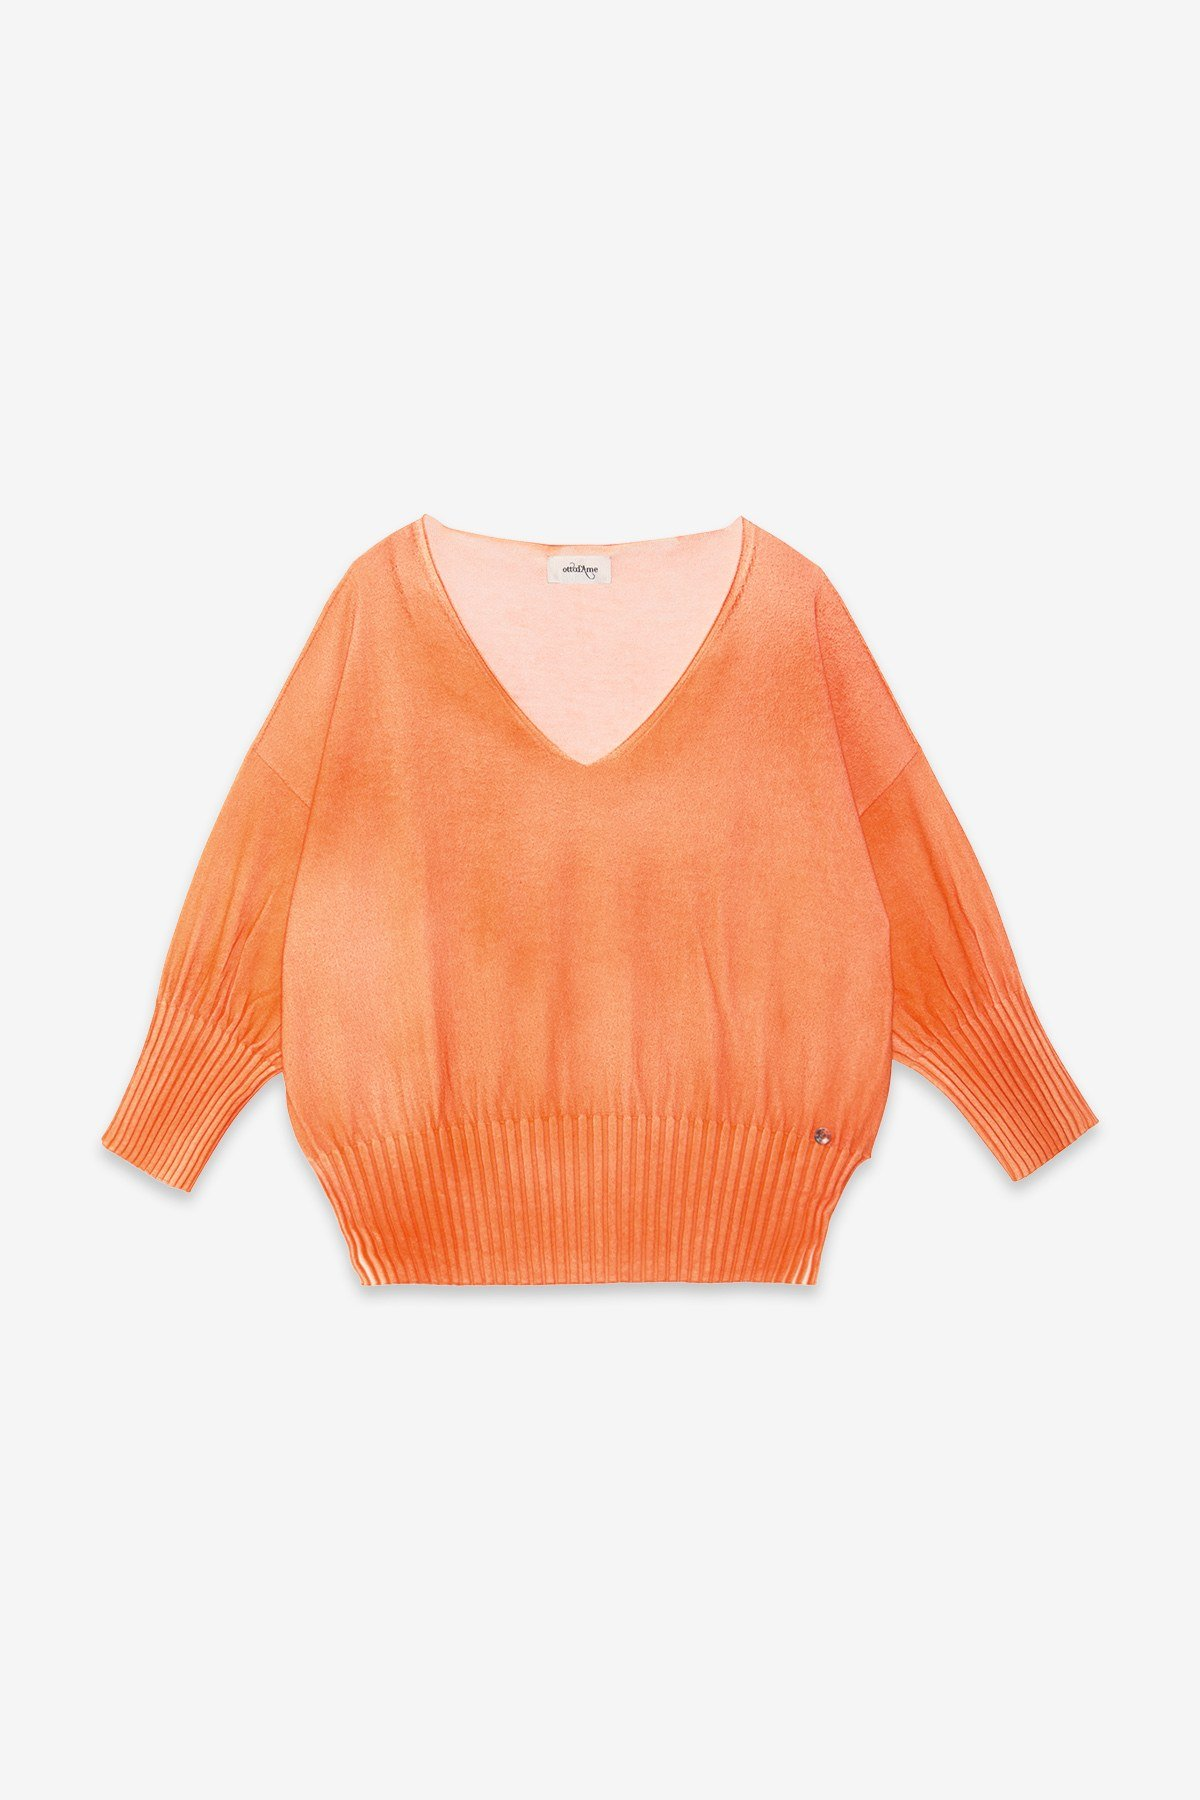 Jumper with elastic band at the bottom